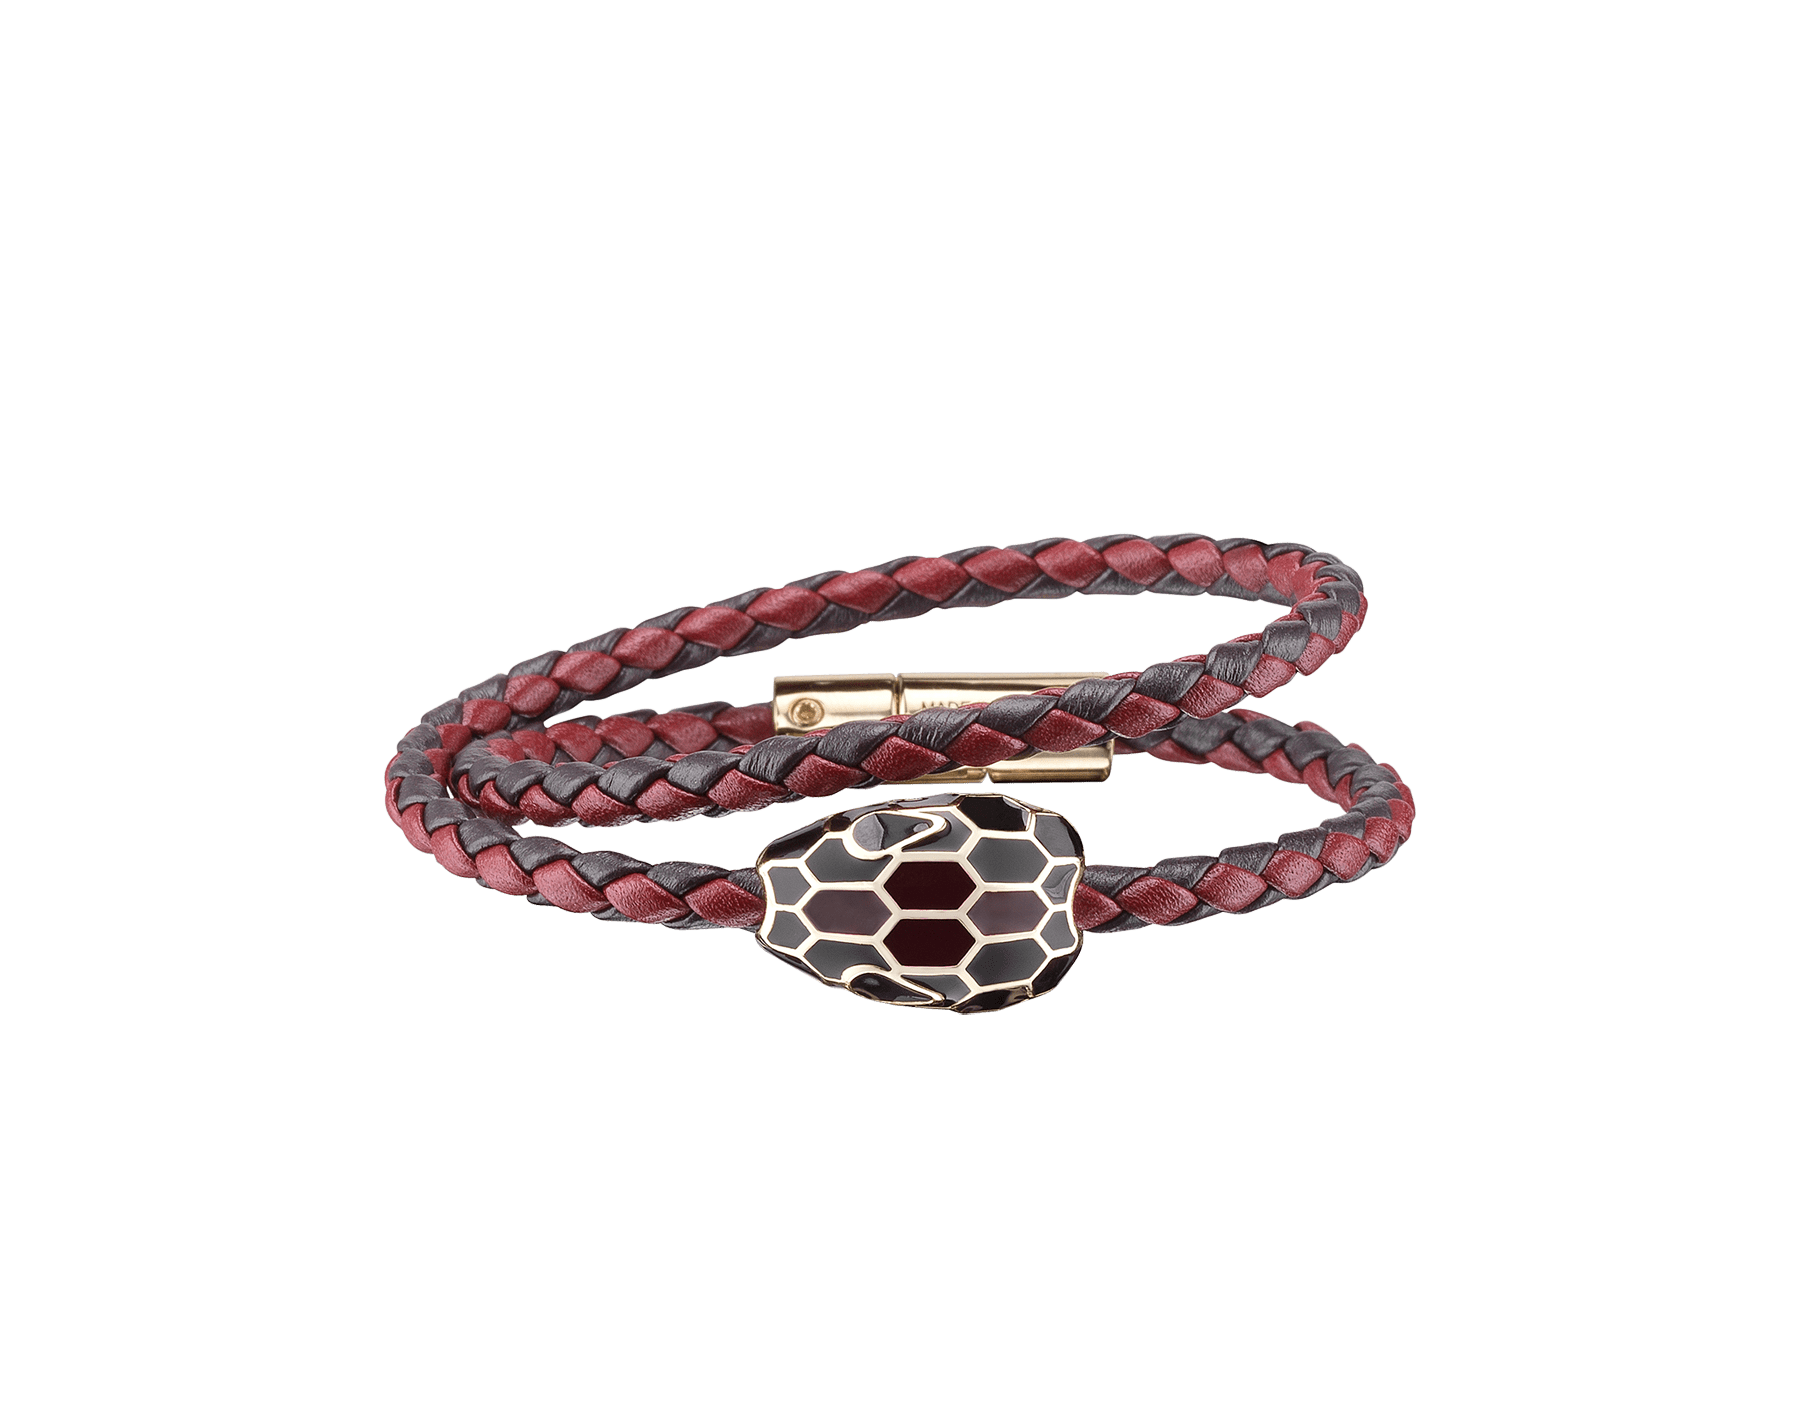 Serpenti Forevermulti-coiled braid bracelet in plum amethyst and roman garnet woven calf leather with an iconic snakehead décor in black and plum amethyst enamel. SerpDoubleBraid-WCL-PARG image 1